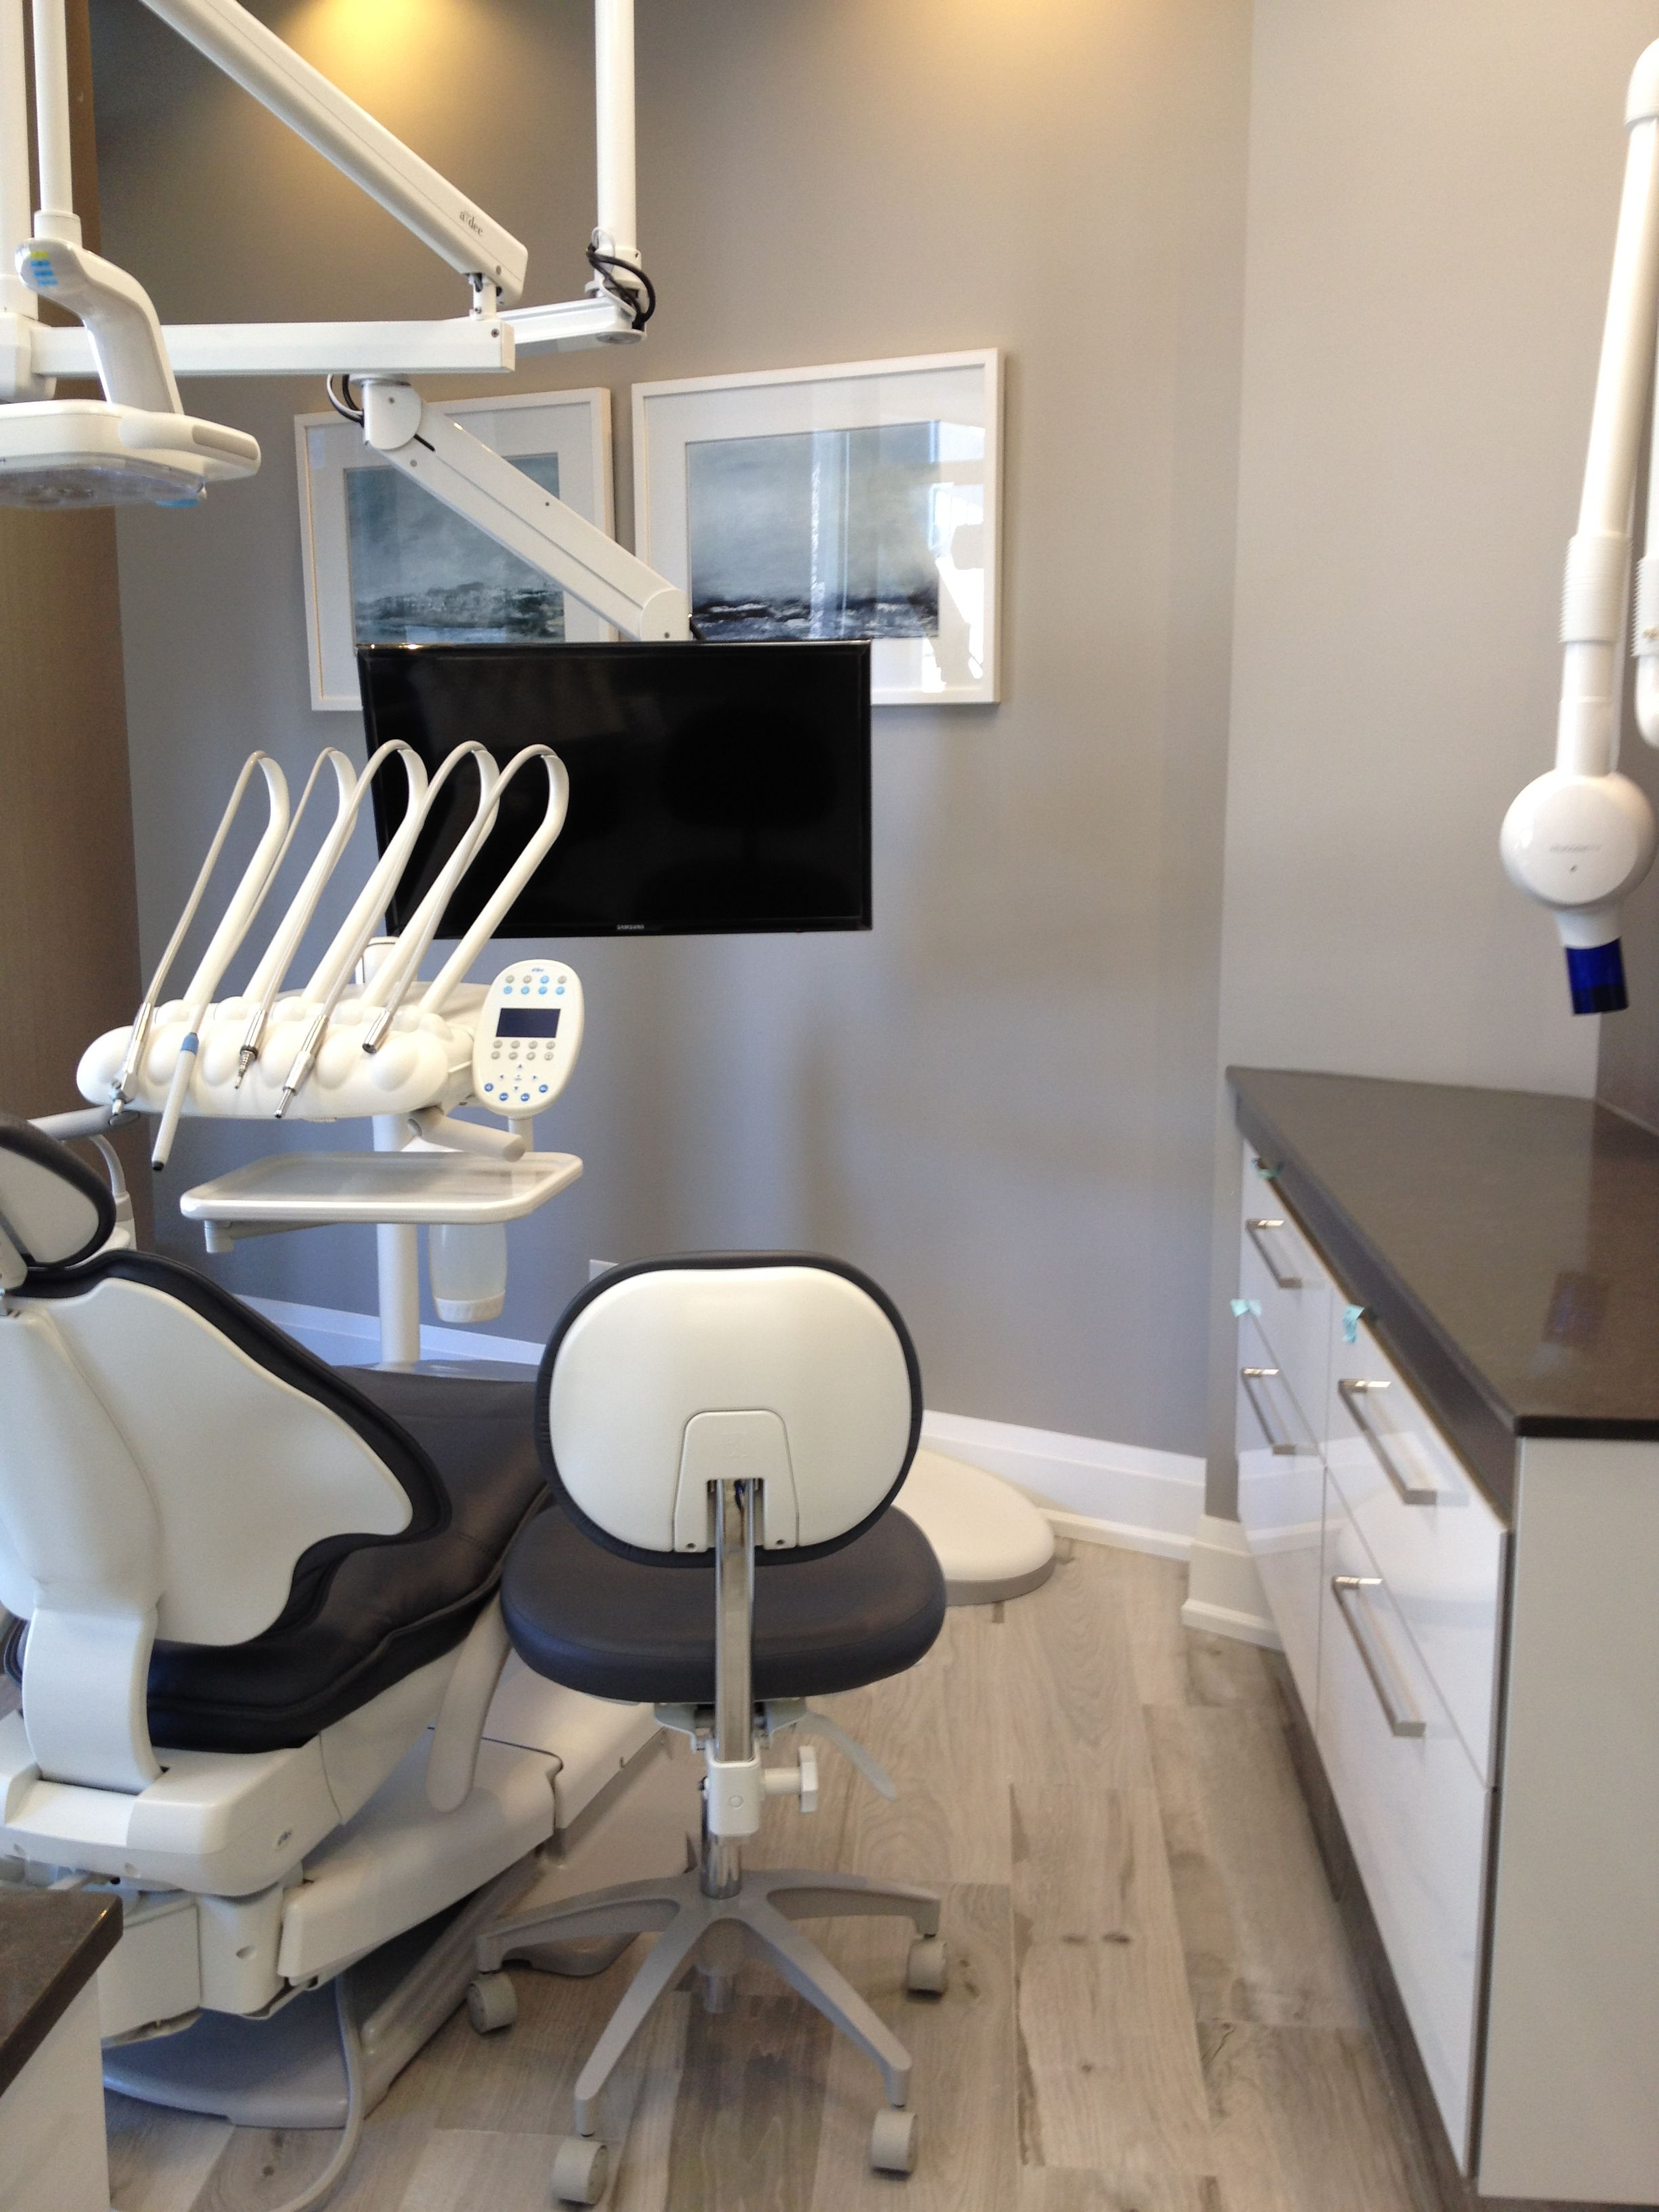 Dental Office A Dec 500 Dentaal Denta